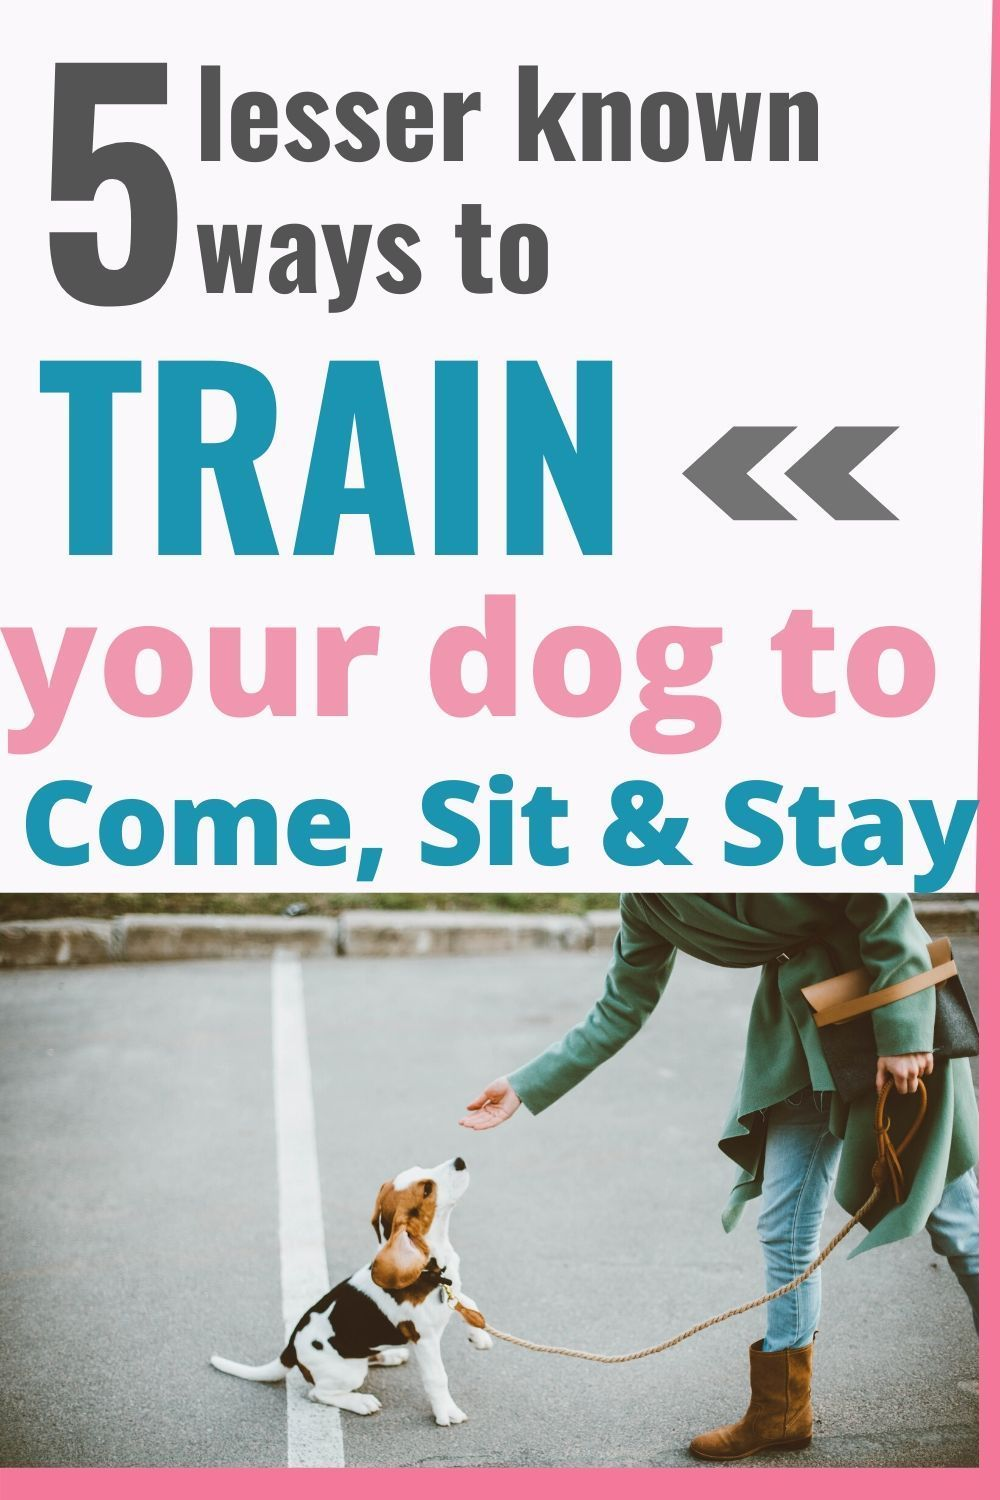 5 Ways To Train Your Dog To Come Sit Stay Training Your Dog